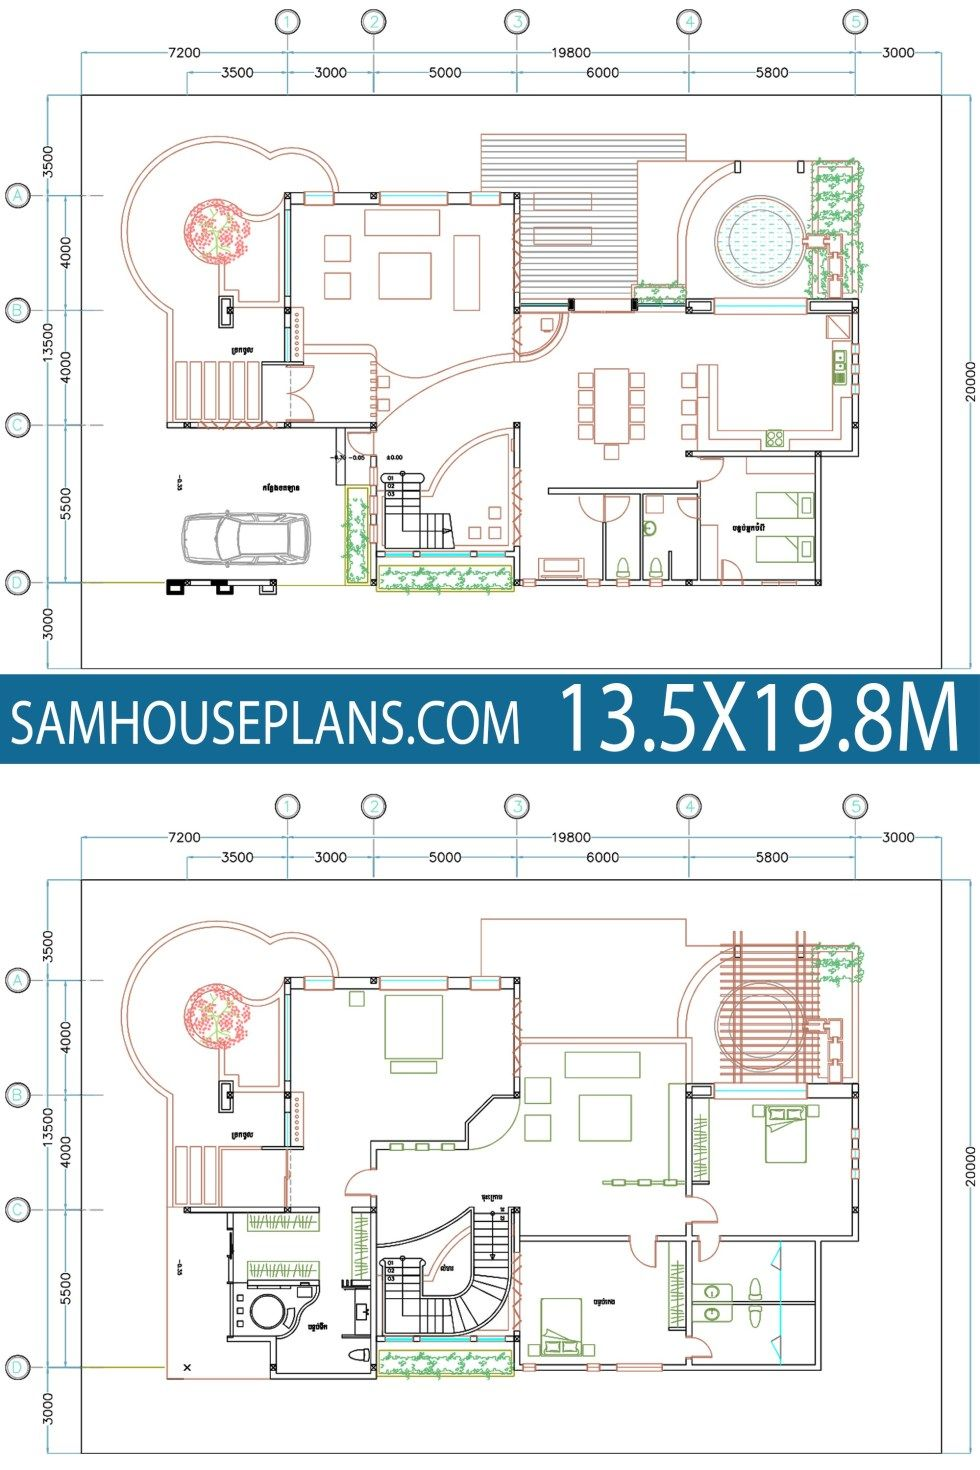 House Plan 13 5x19 8m With 4 Bedrooms Sam House Plans Indian House Plans Bungalow House Design House Plans